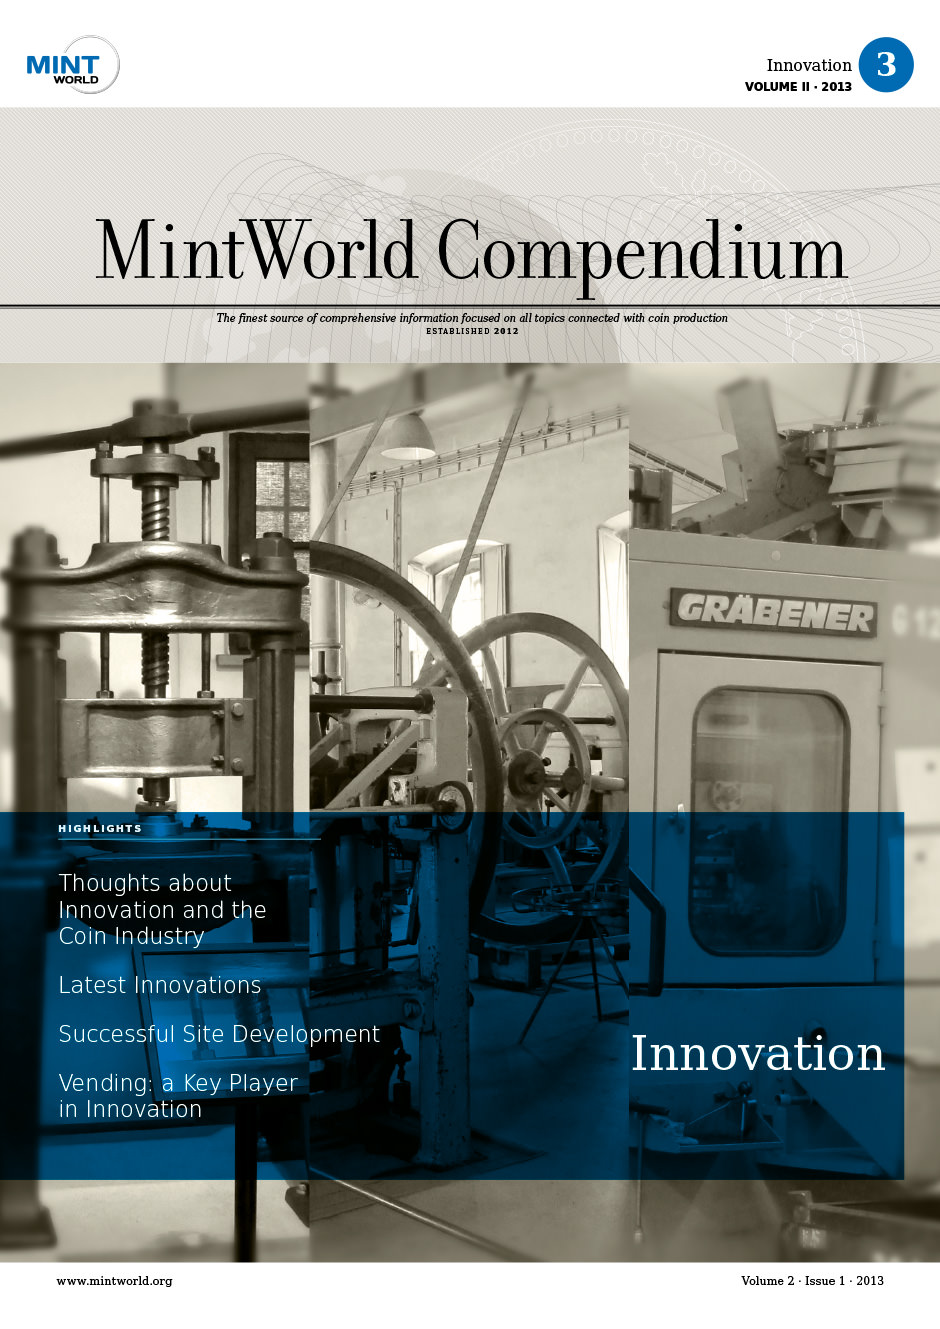 MintWorld Compendium, Compendium 2 · Issue 1 · 2013, Innovation, This issue is about innovation and development in the coin industry.